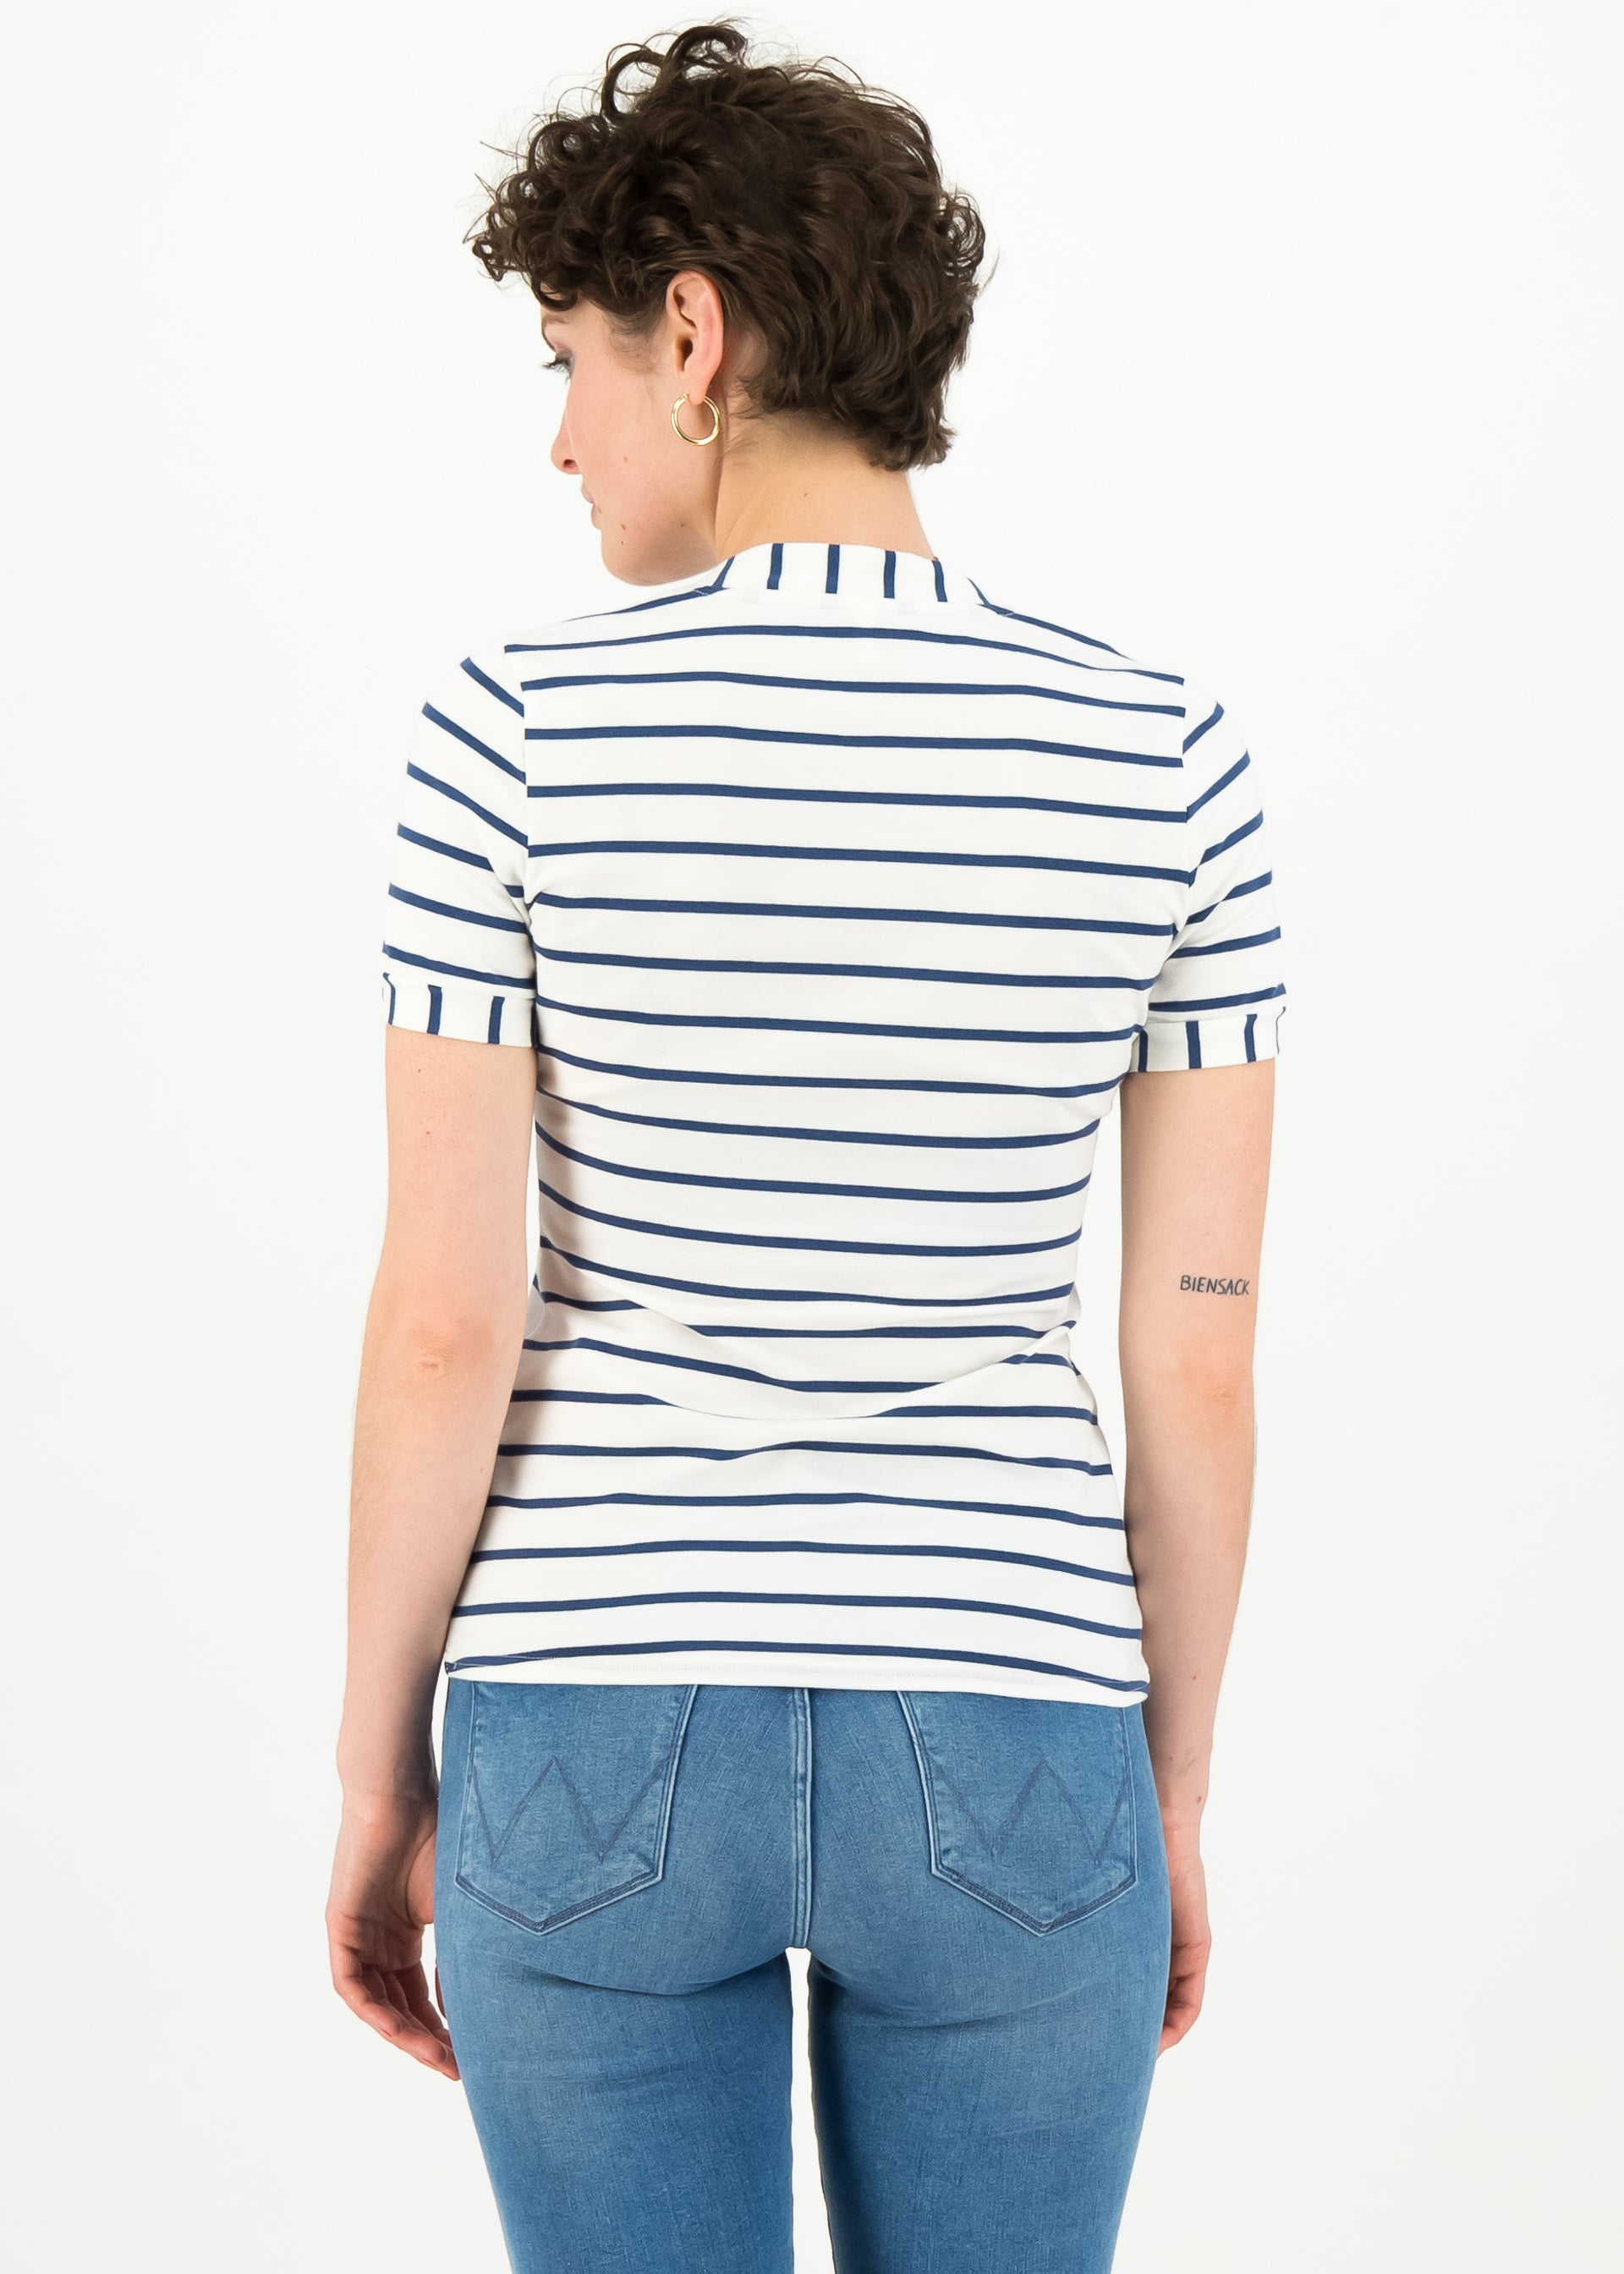 Damen Shirt logo stripe of paris, weiß